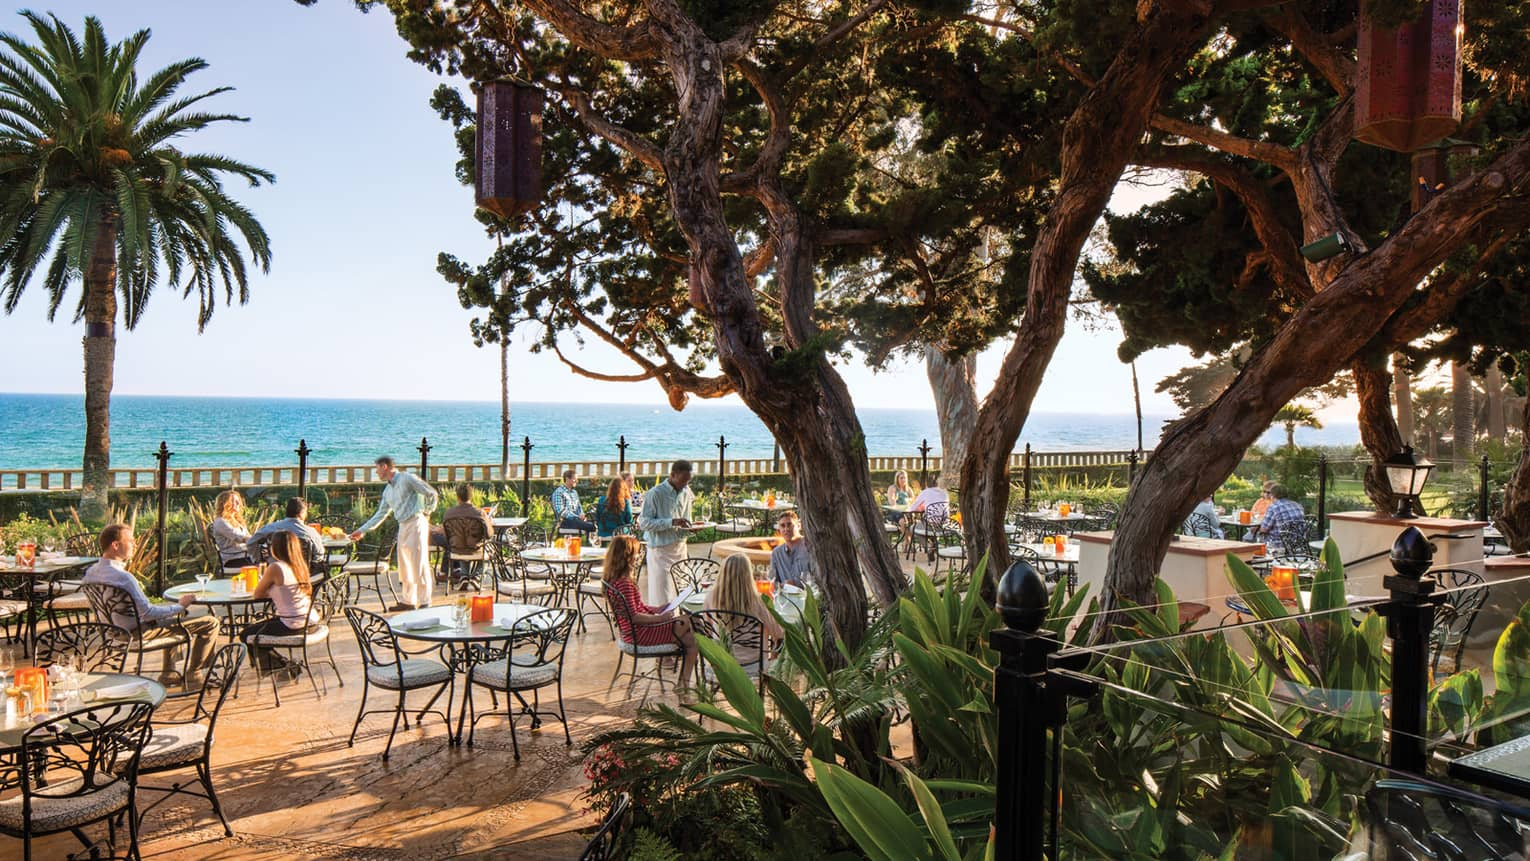 View of diners on Bella Vista patio at wrought-iron tables, chairs through large trees, plants